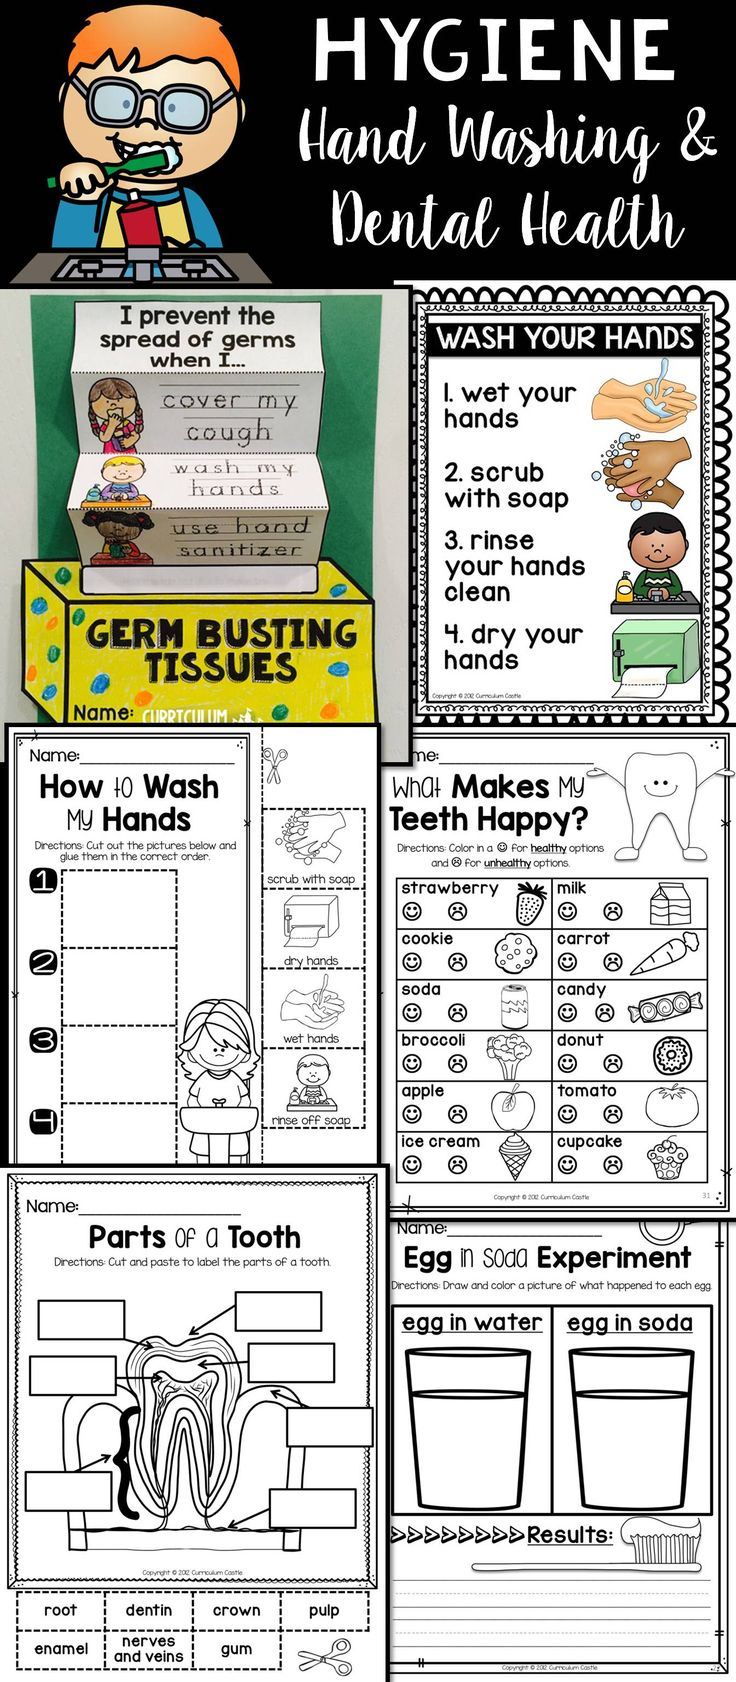 Hygiene and Healthy Habits: Pre-K-1st grade activities that focus on hand washing and dental health!